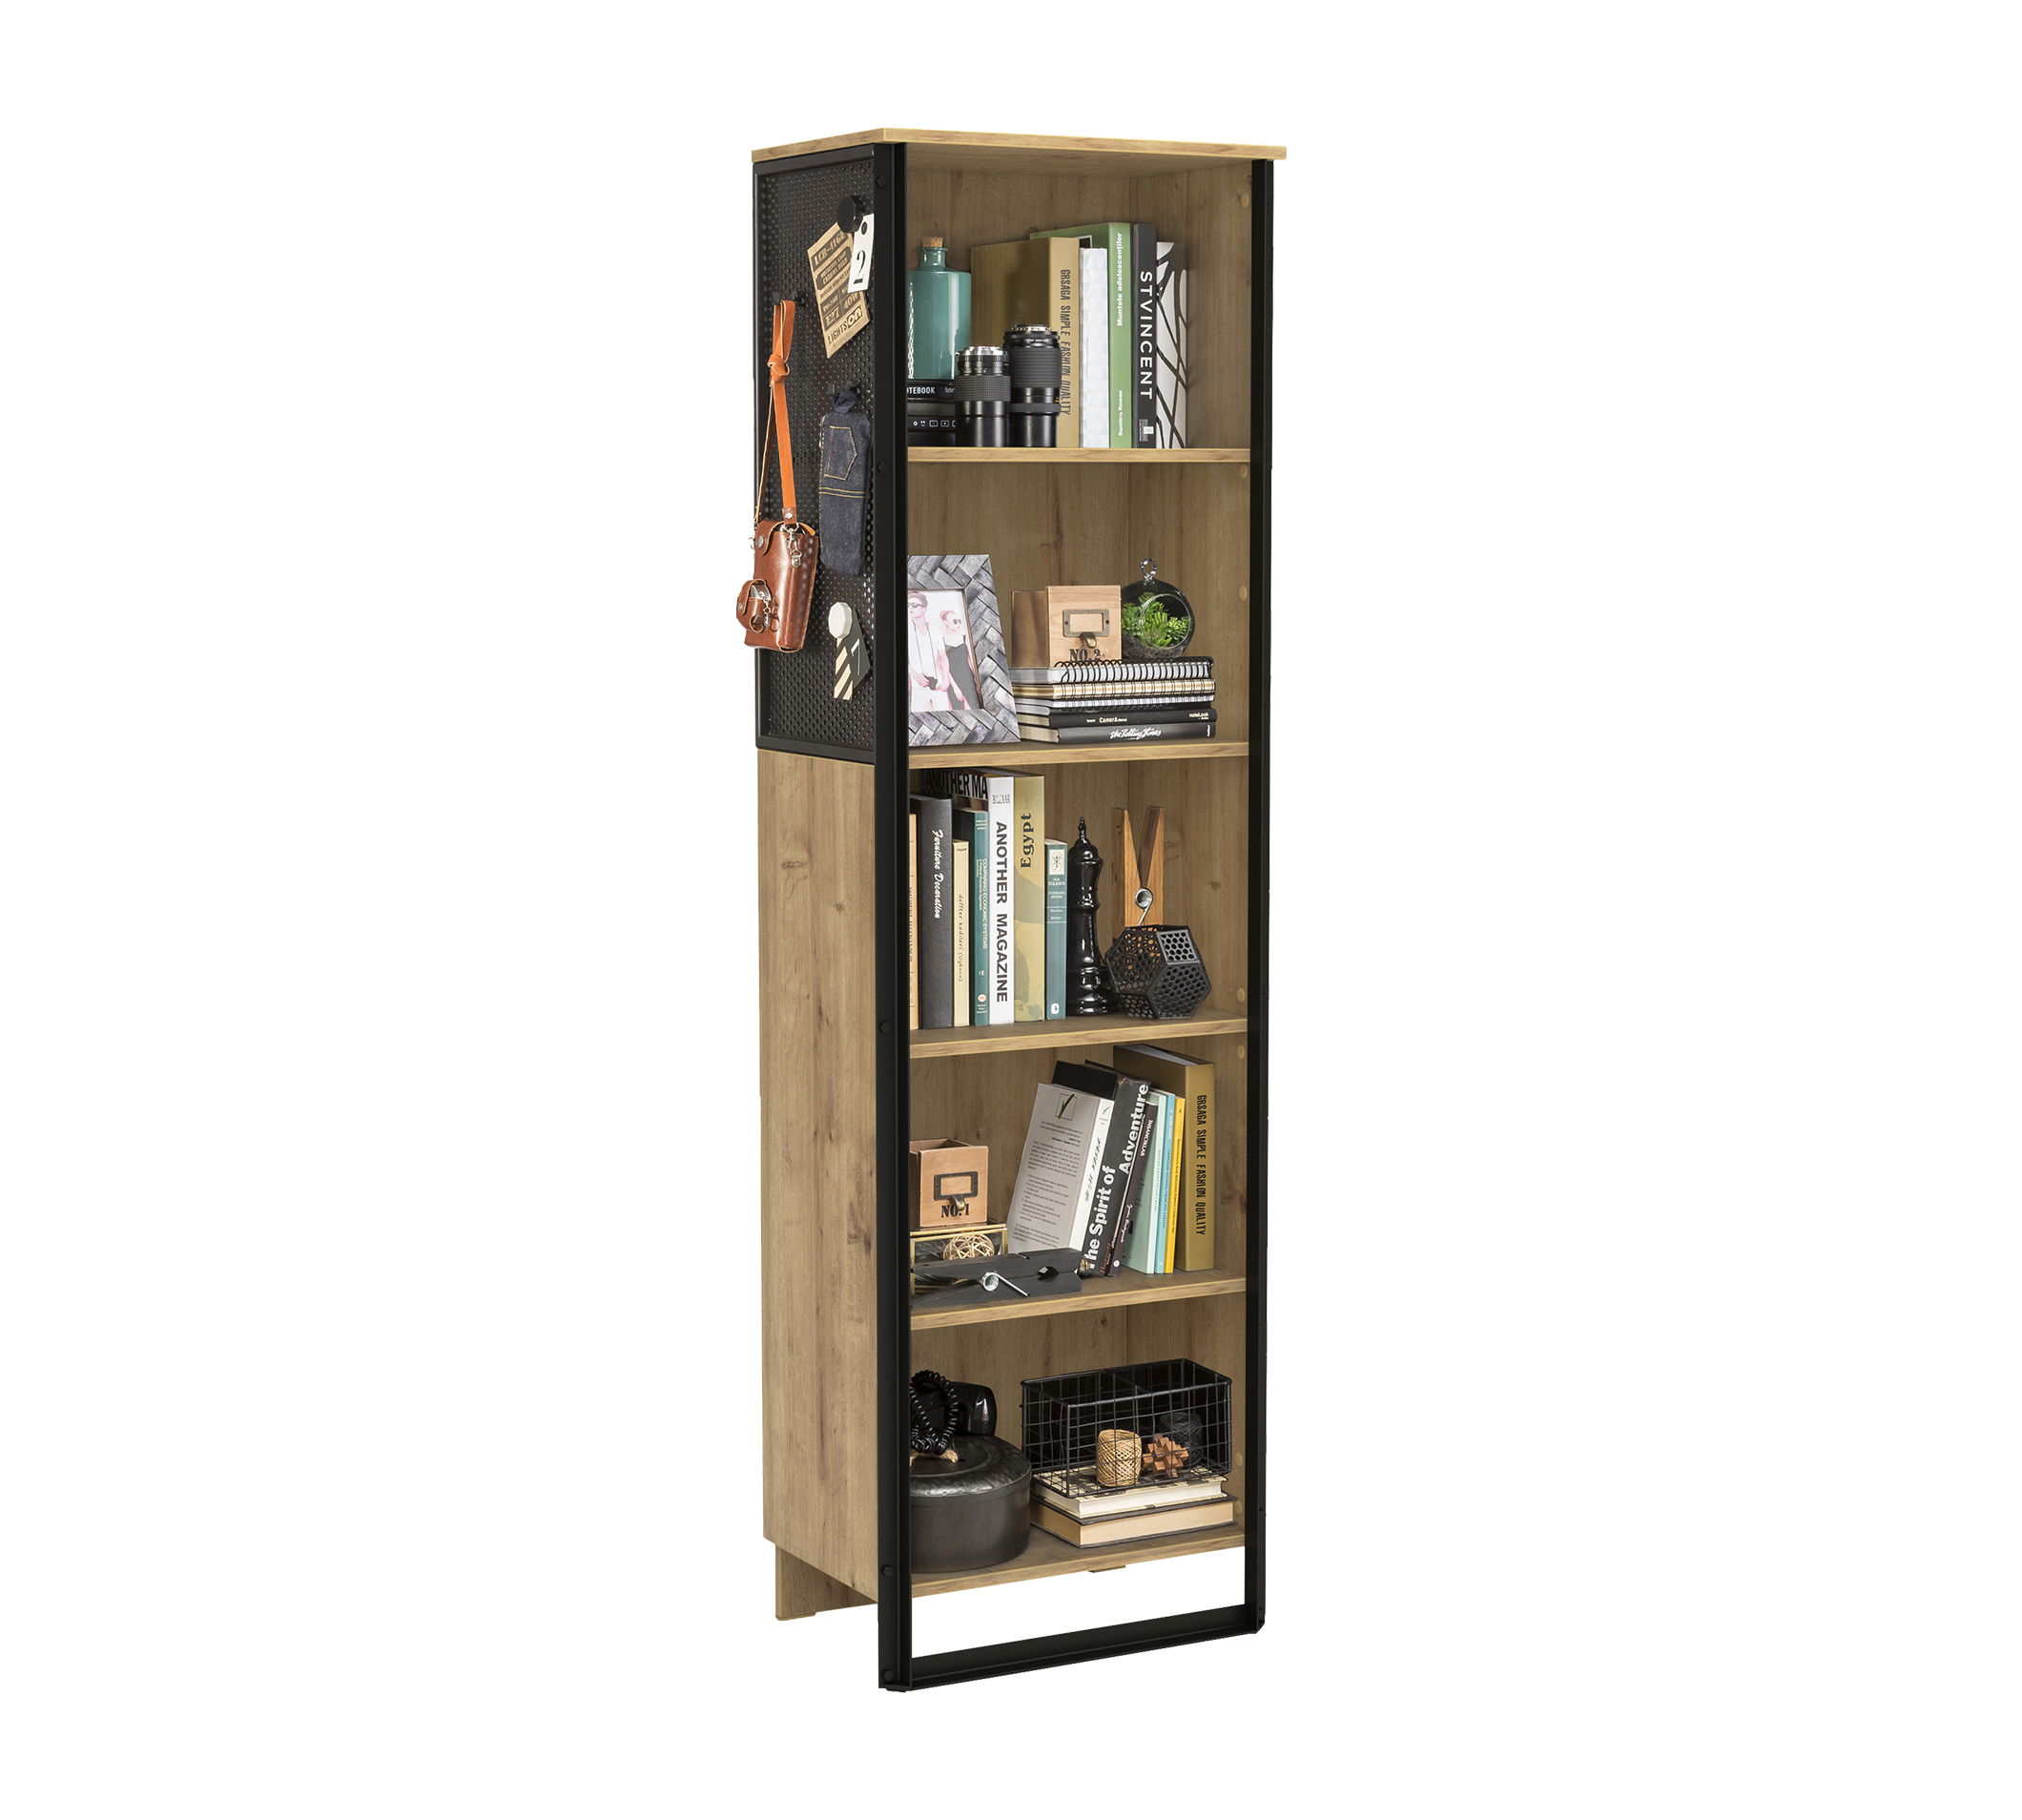 Biblioteca din pal si metal pentru tineret Wood Metal Natural / Negru, l53xA35xH180 cm imagine